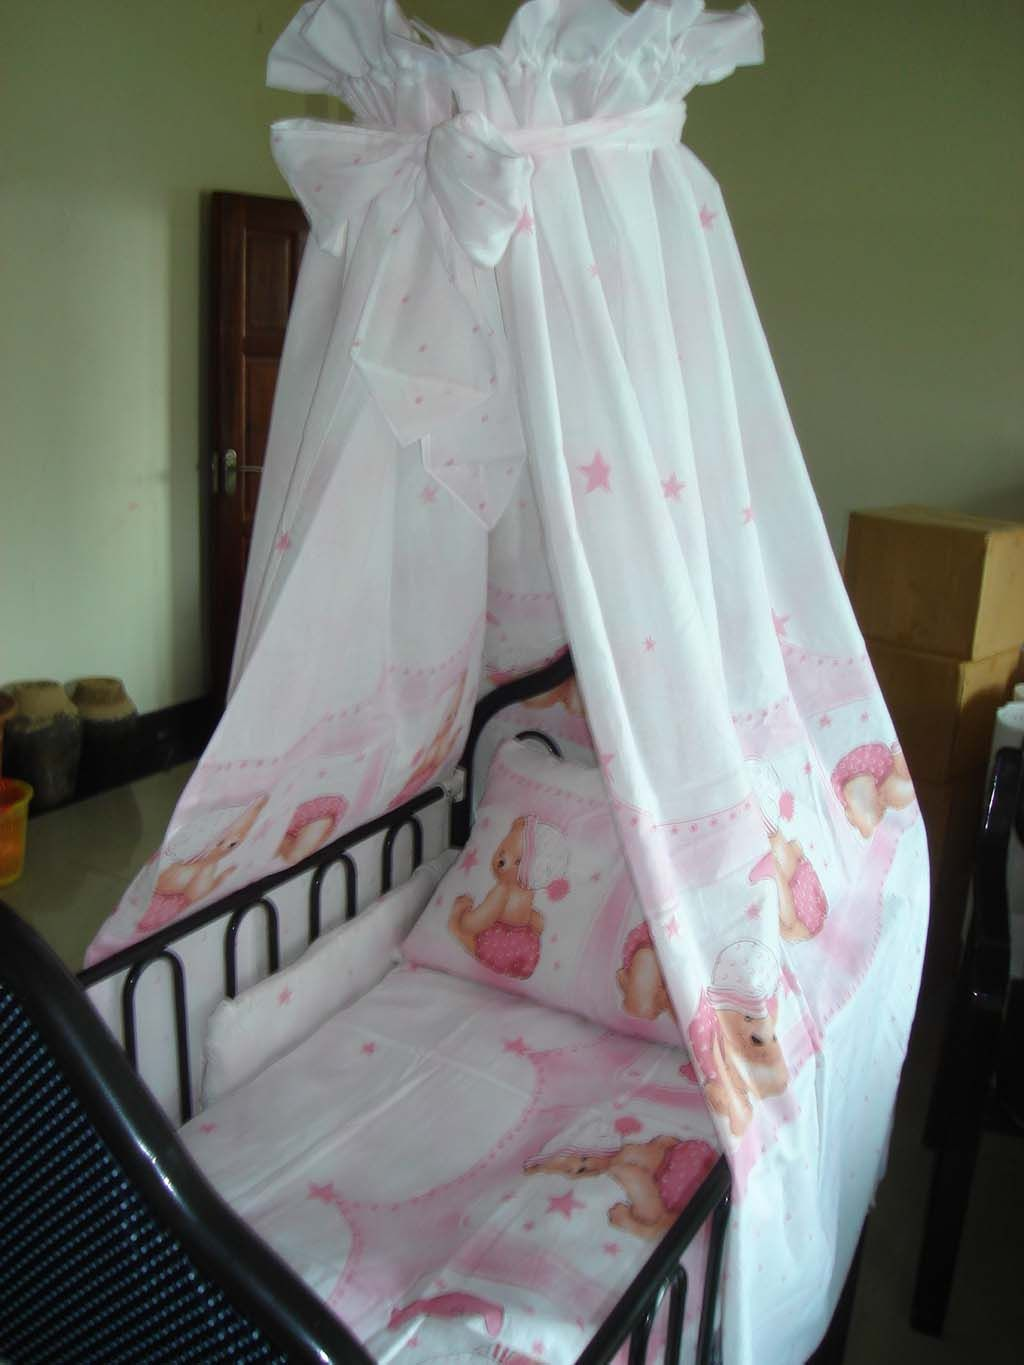 Black Metal Baby Crib with Cute Bear Pattern Bedding Accessories and Soft White Curtain Decorating for Baby Nursery Crib Decorating with Canopy & crib canopy | Crib Canopy - China Infant Crib | Nursery Ideas ...